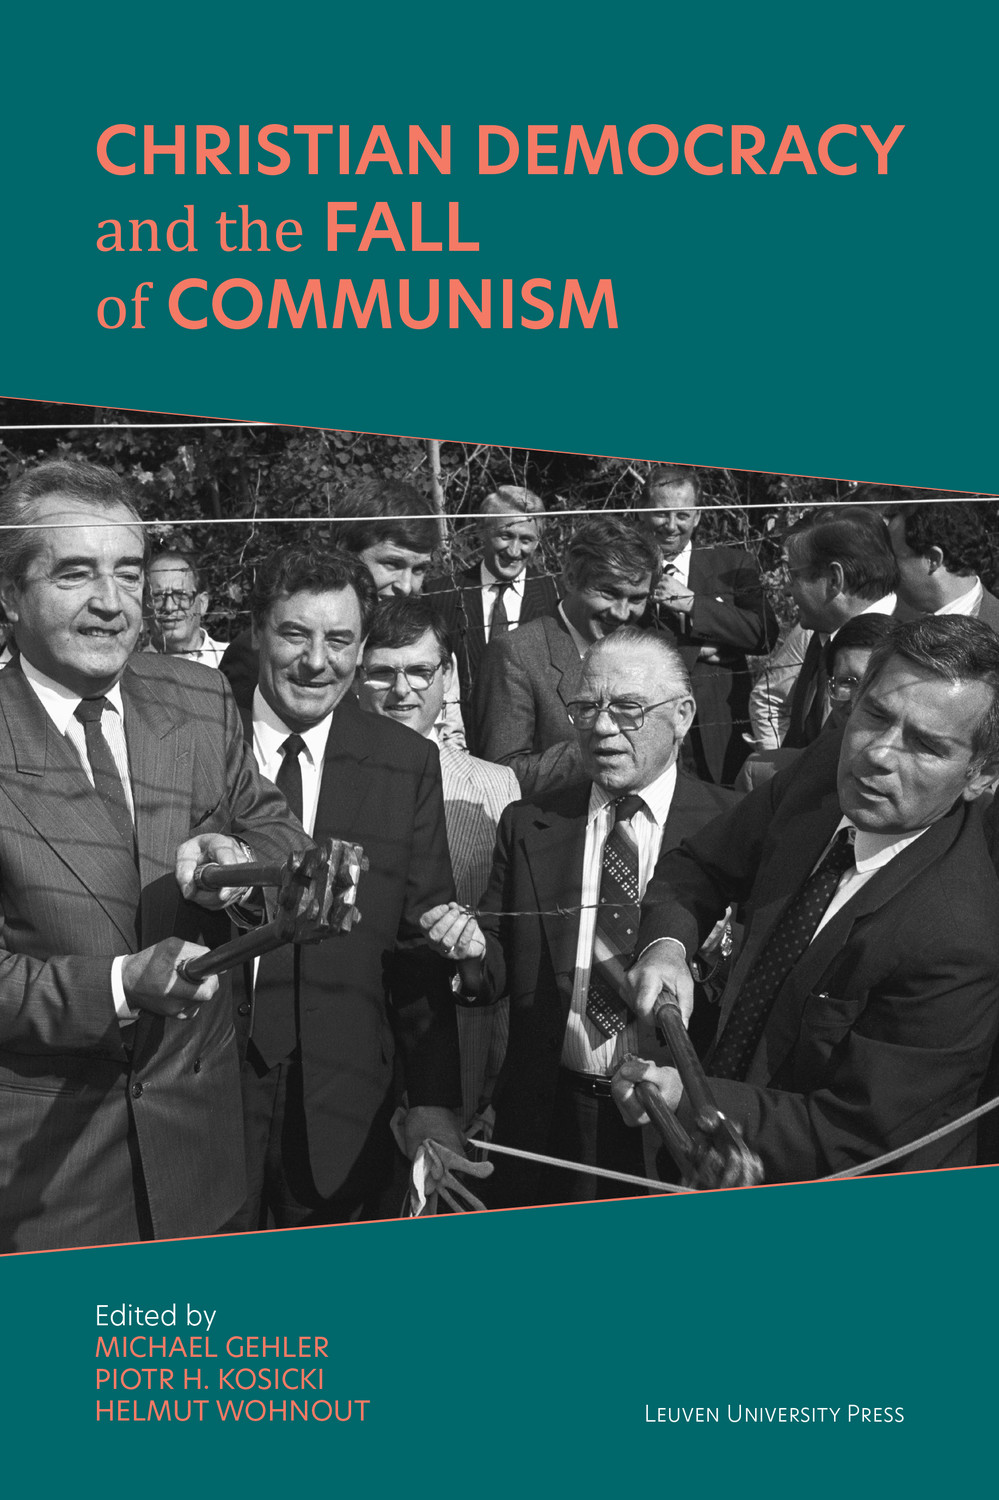 Christian Democracy and the Fall of Communism